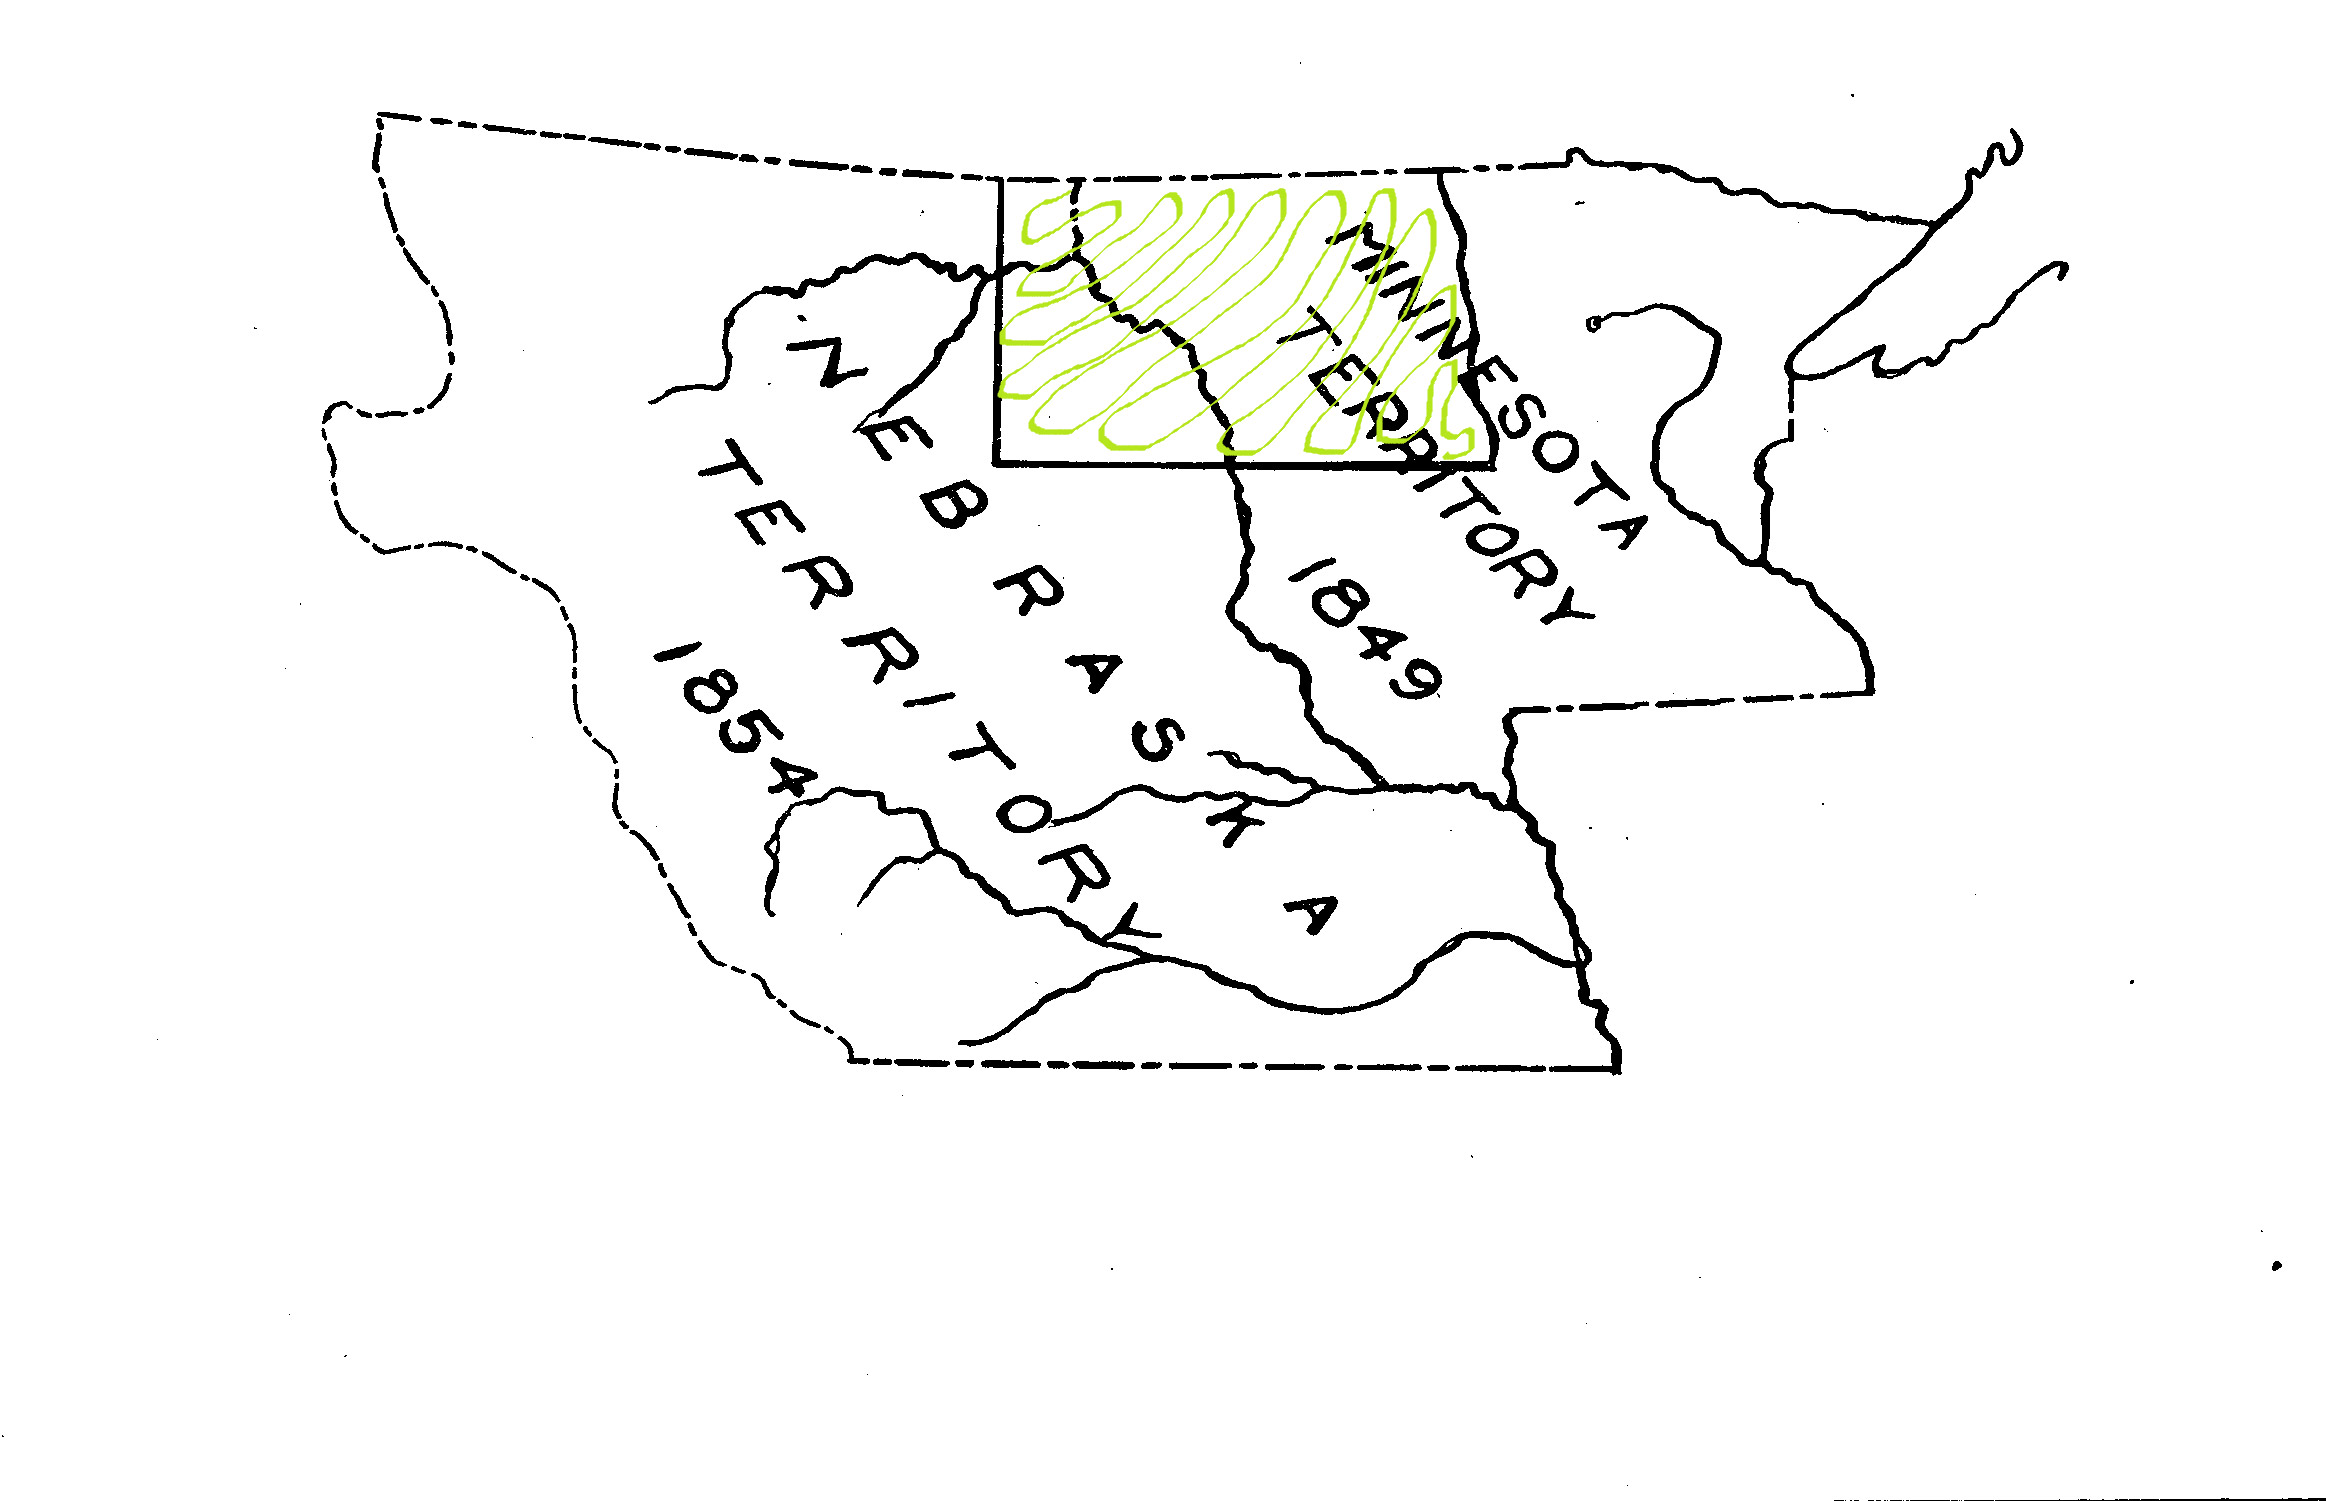 In 1854, the western portion of North Dakota (west of the Missouri River) was given to Nebraska Territory.